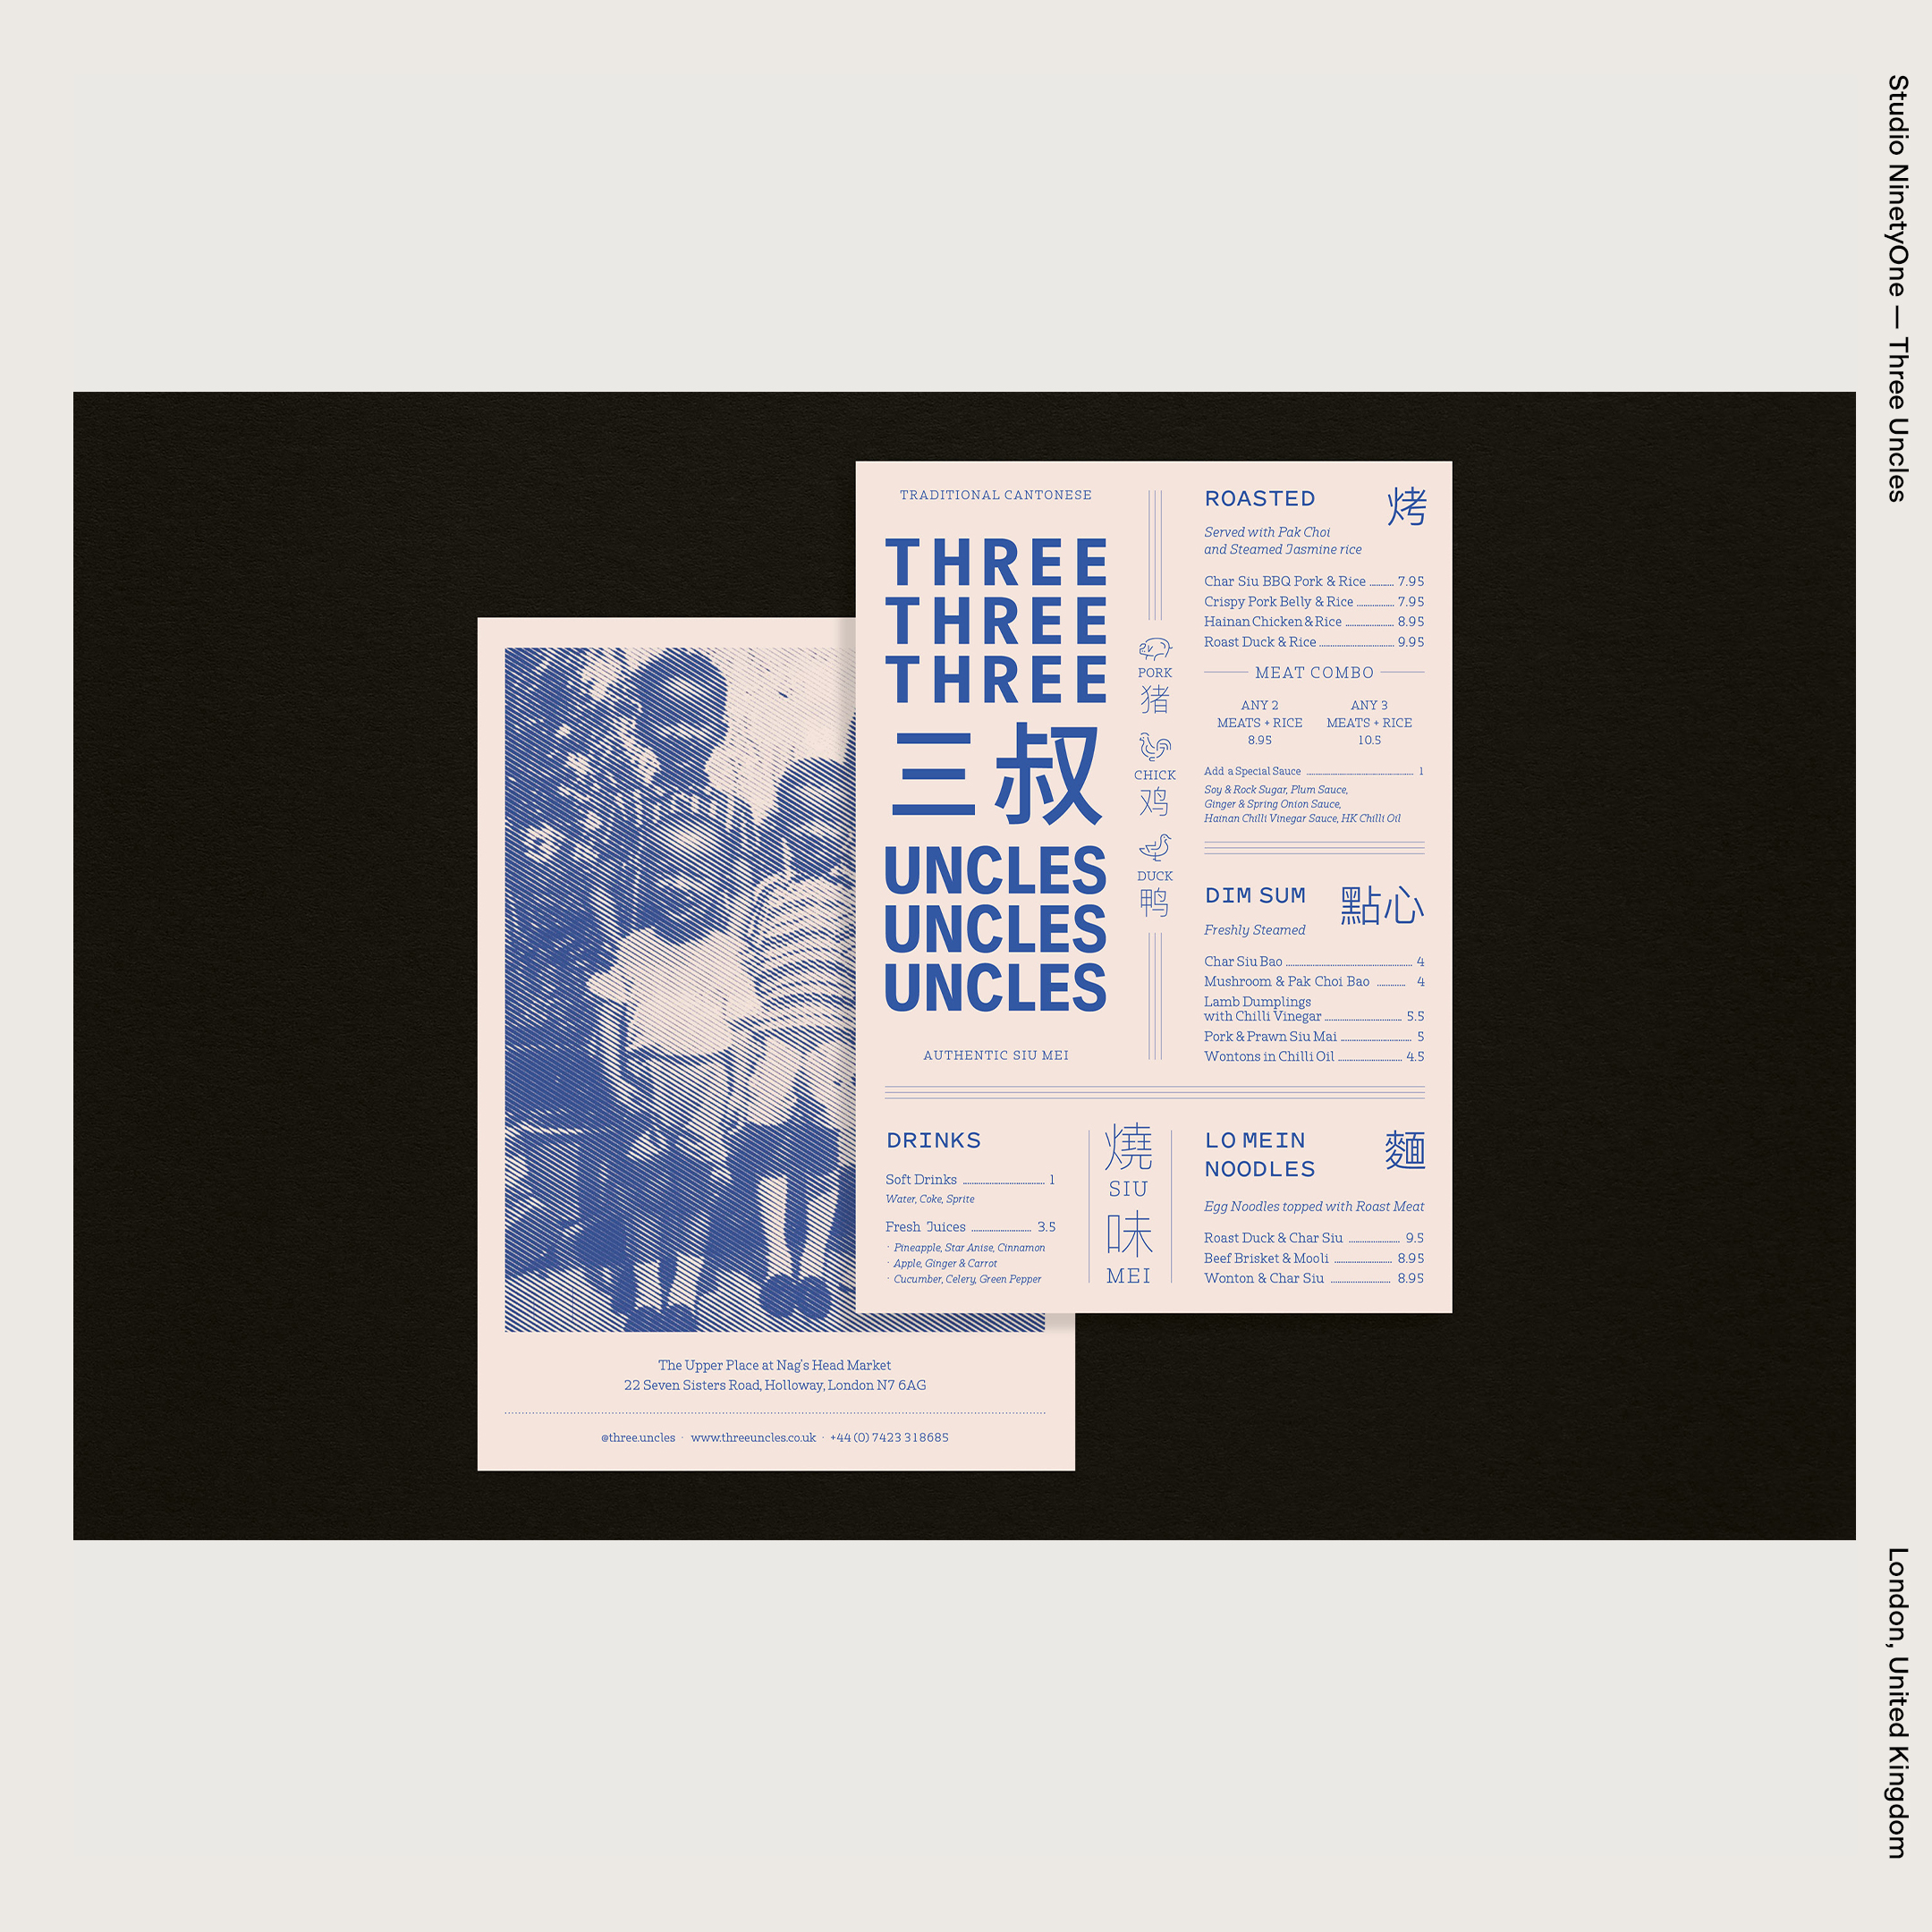 Studio NinetyOne — Three Uncles